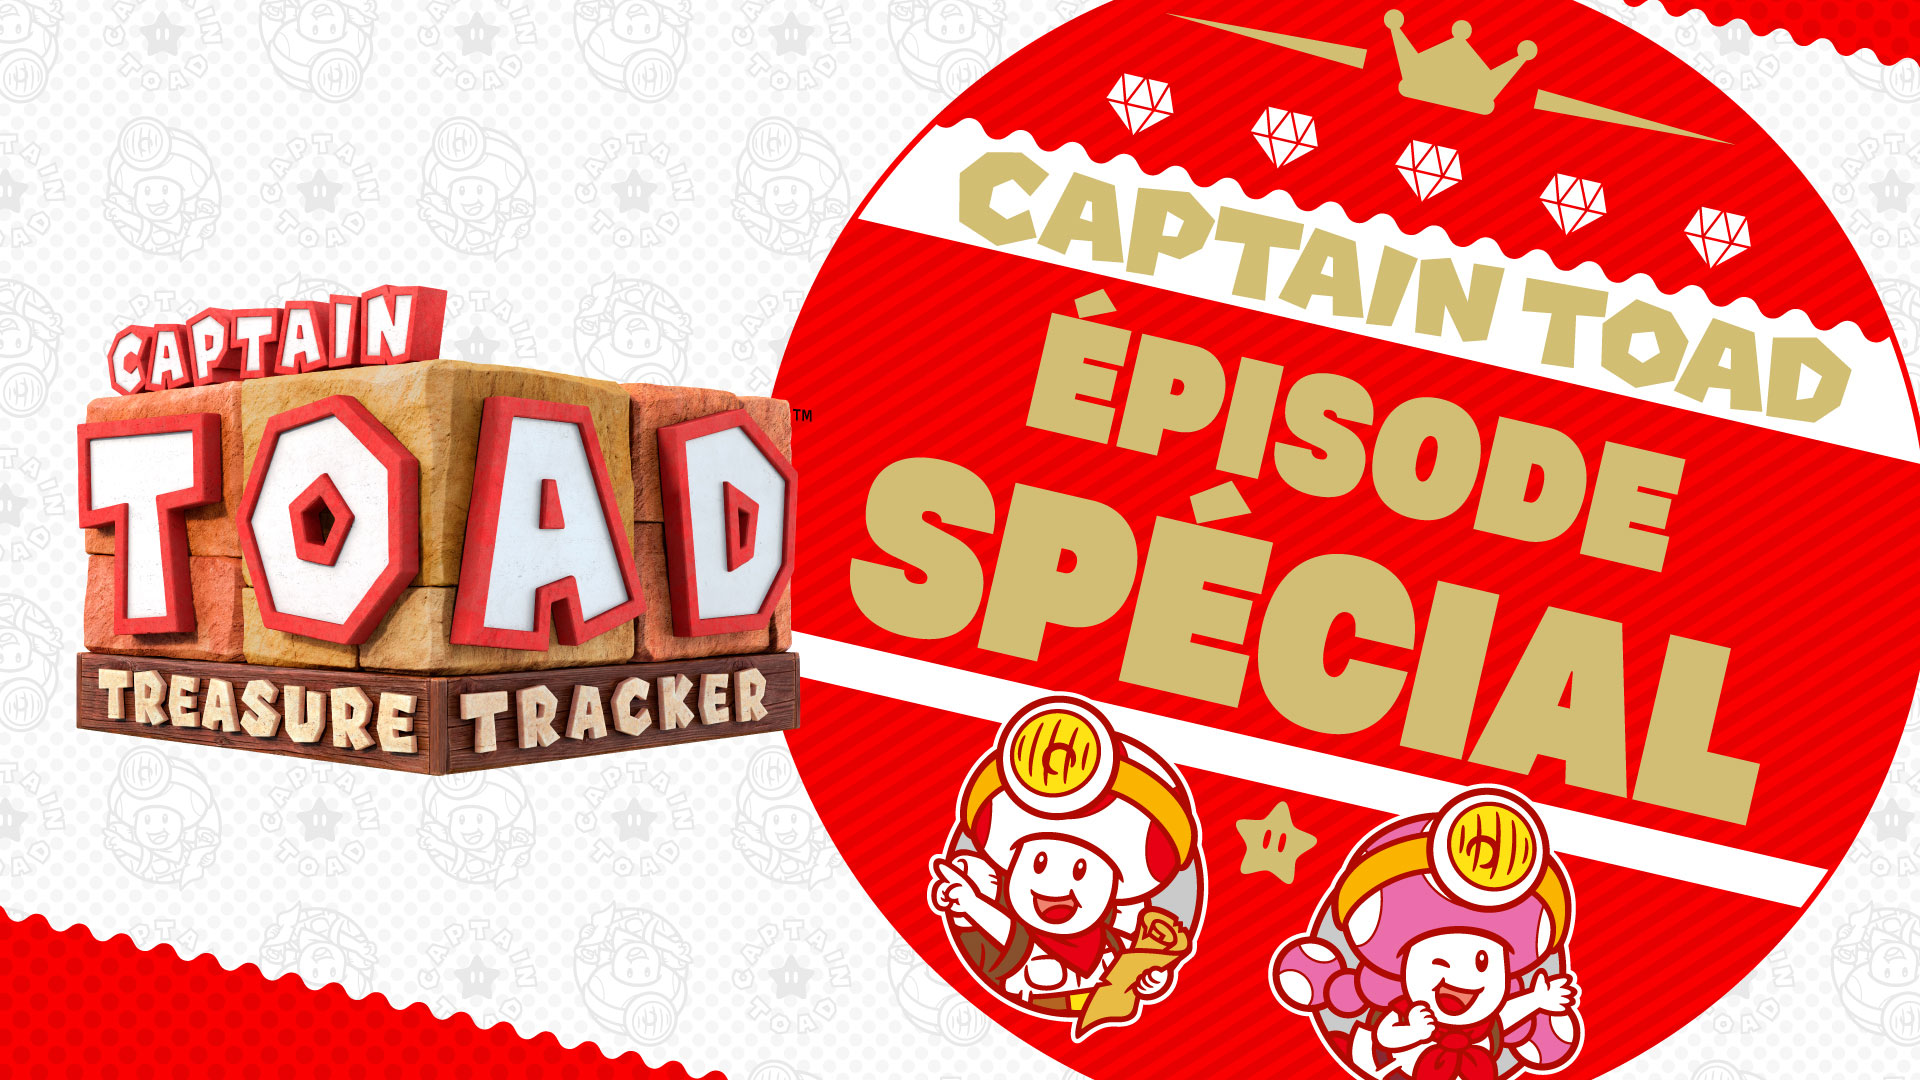 CaptainToad-TreasureTracker-EpisodeSpecial Switch Jaquette 001